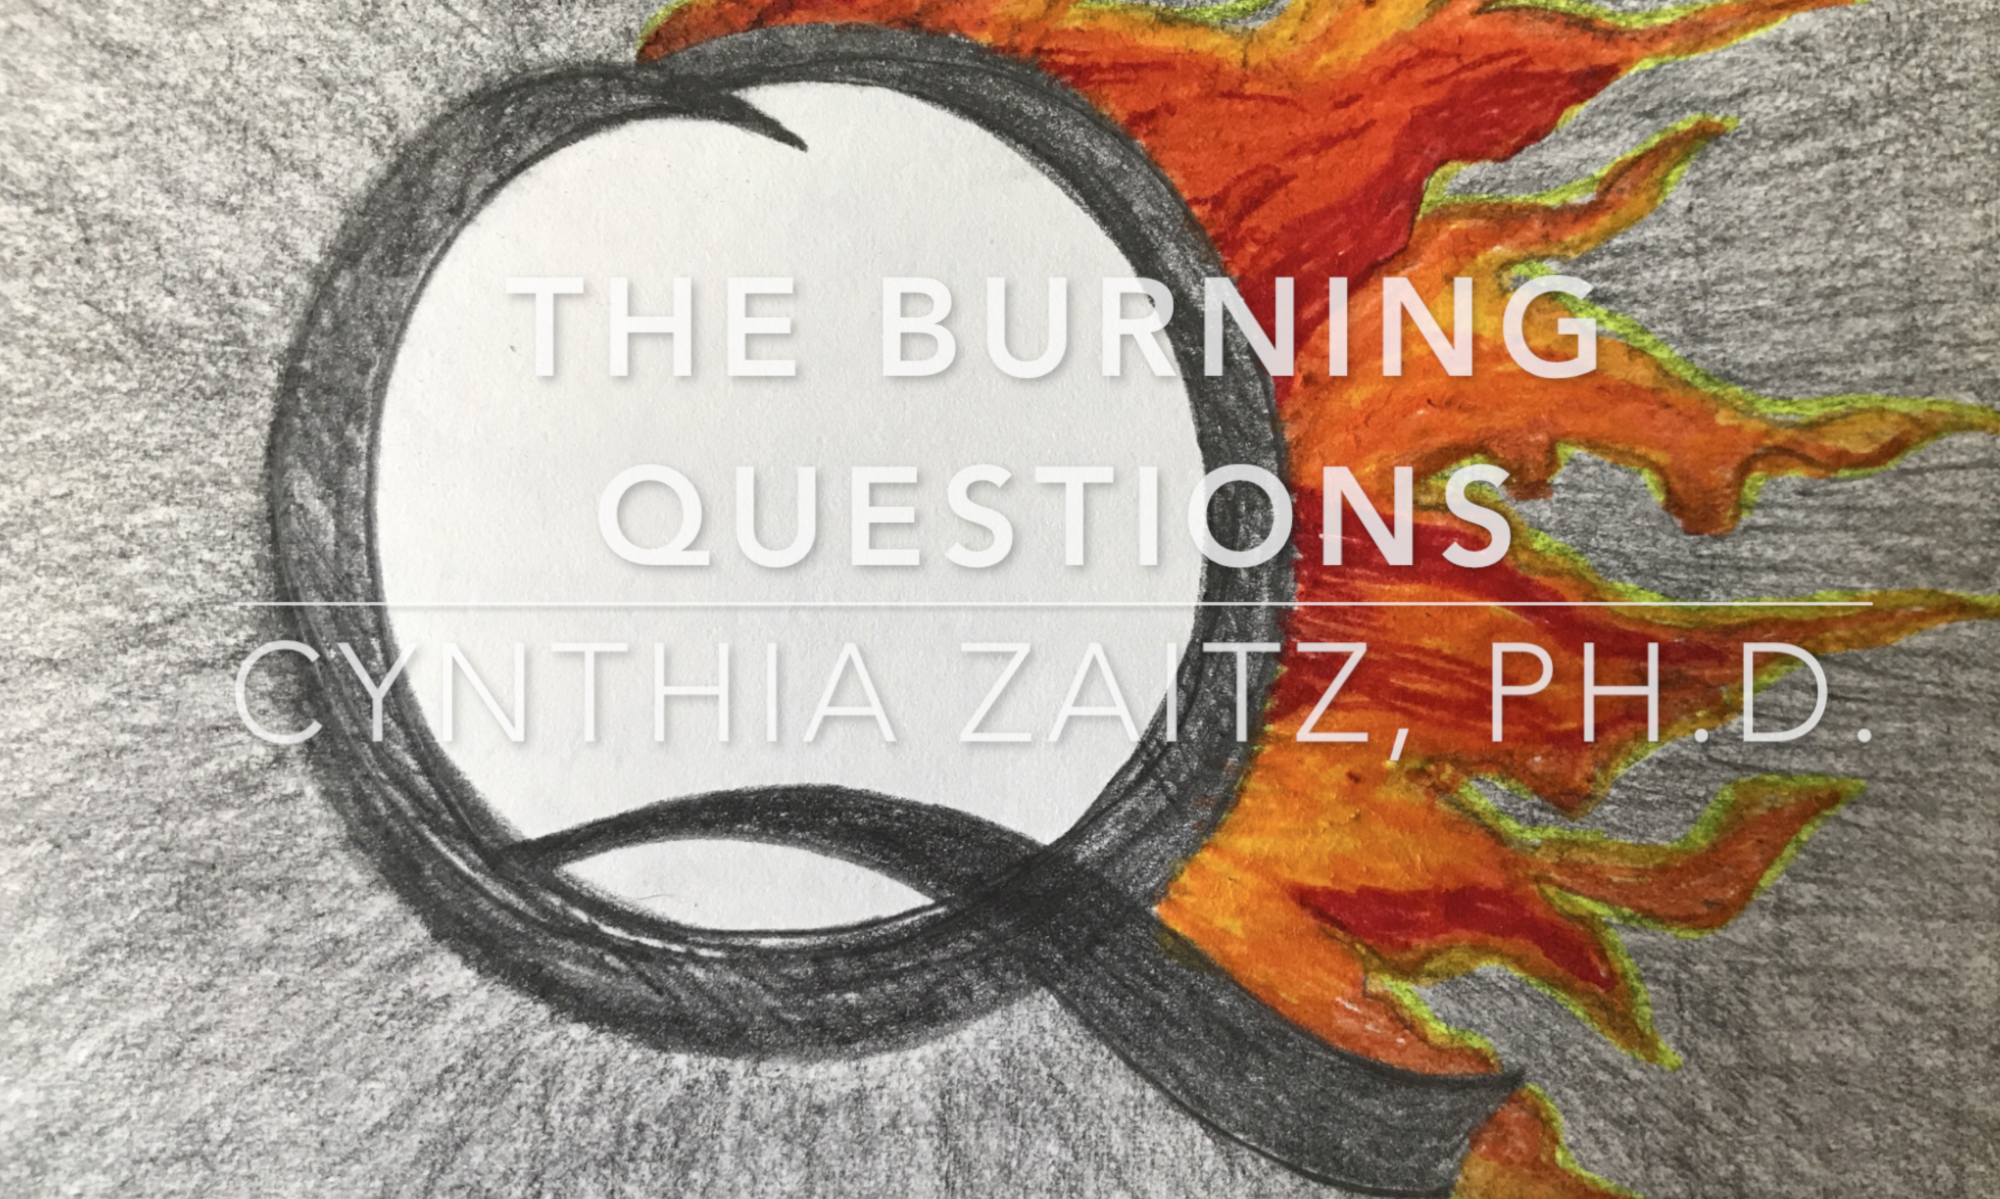 theburningquestions.com